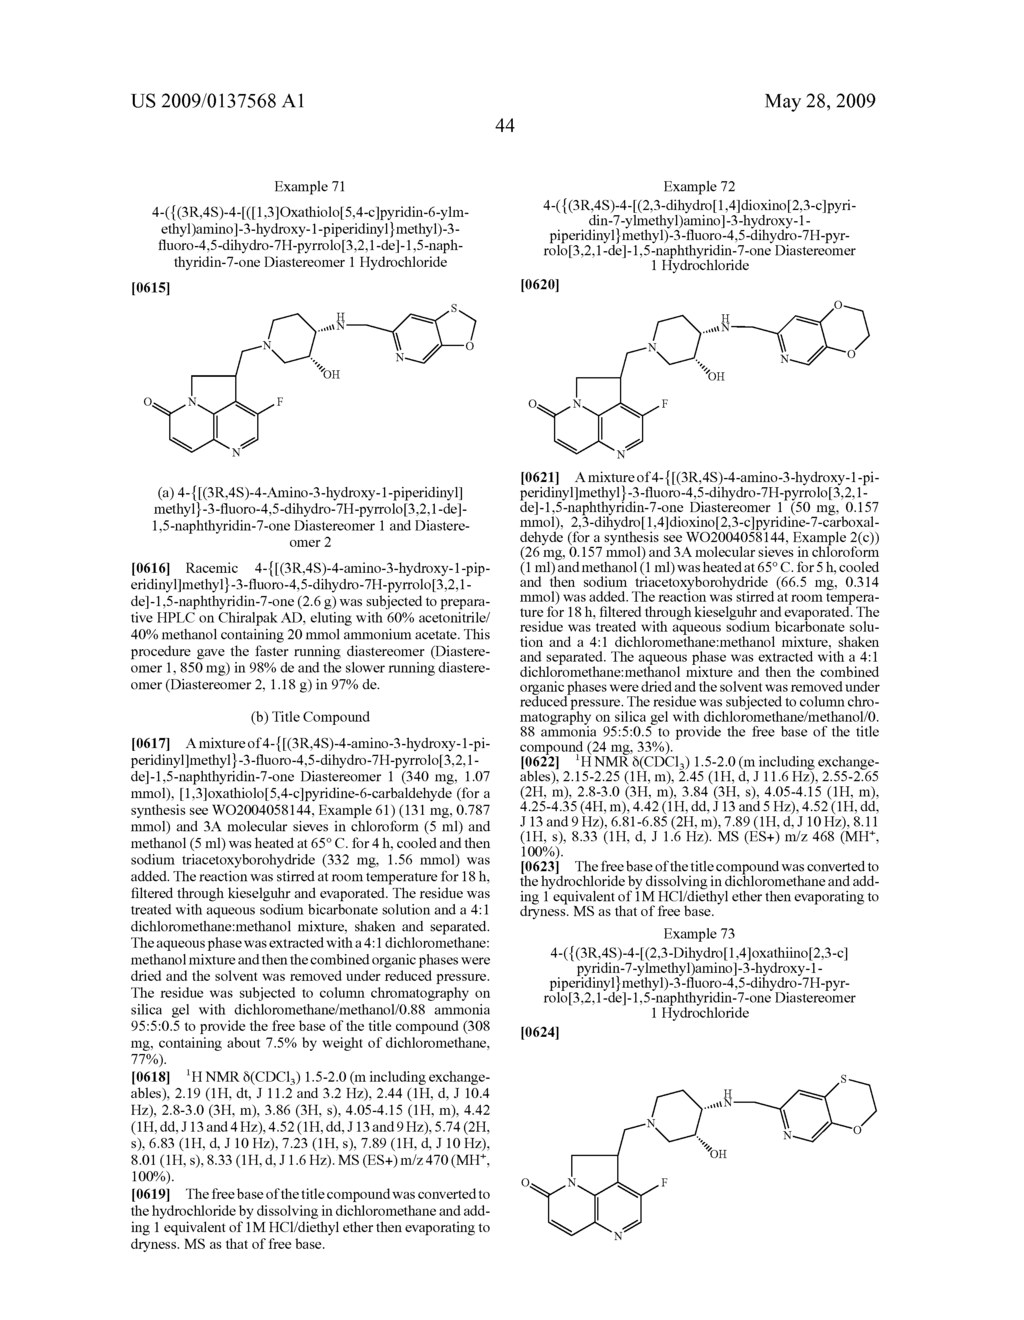 Tryclic Nitrogen Containing Compounds and their Use as Antibacterials - diagram, schematic, and image 45